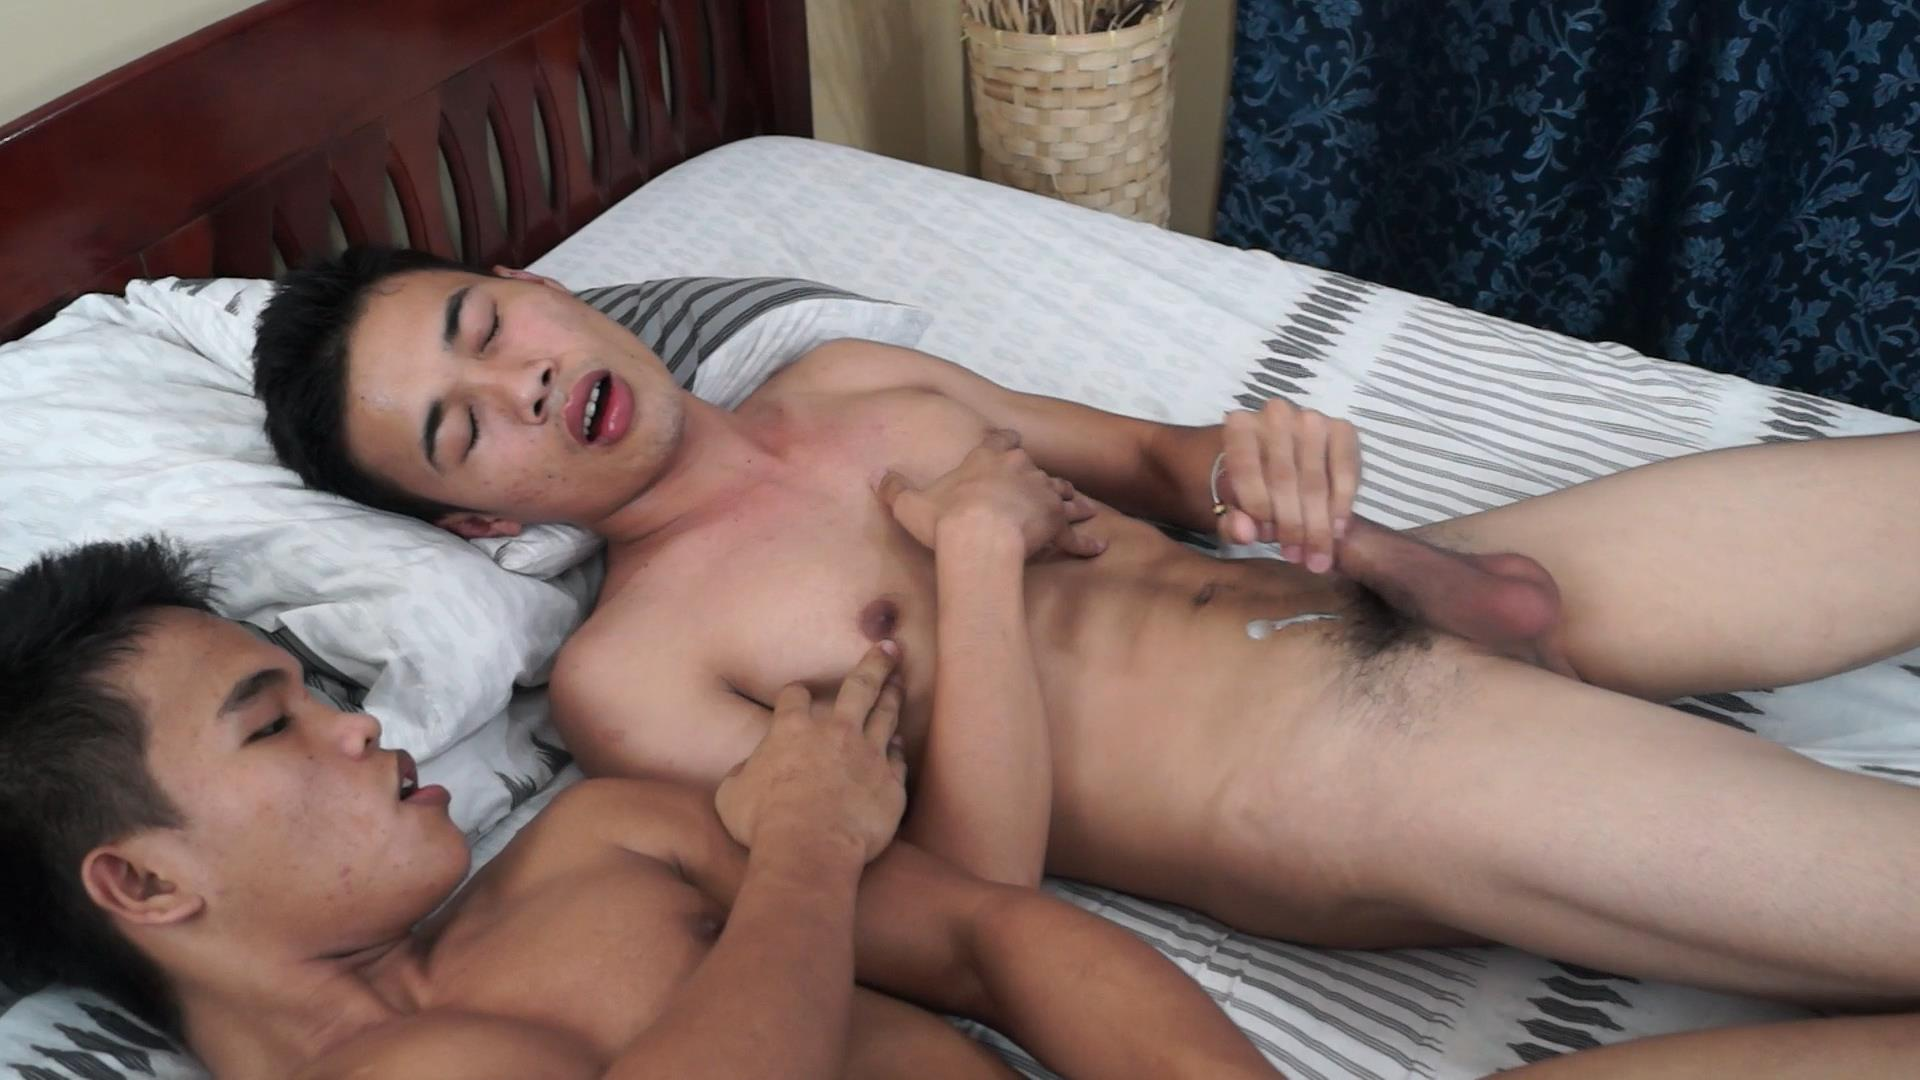 Asia-Boy-Jacob-and-Andrew-Asian-Twinks-With-Big-Asian-Cocks-Fucking-Bareback-Amateur-Gay-Porn-64 Asian Twinks With Big Asian Cocks Fucking Bareback